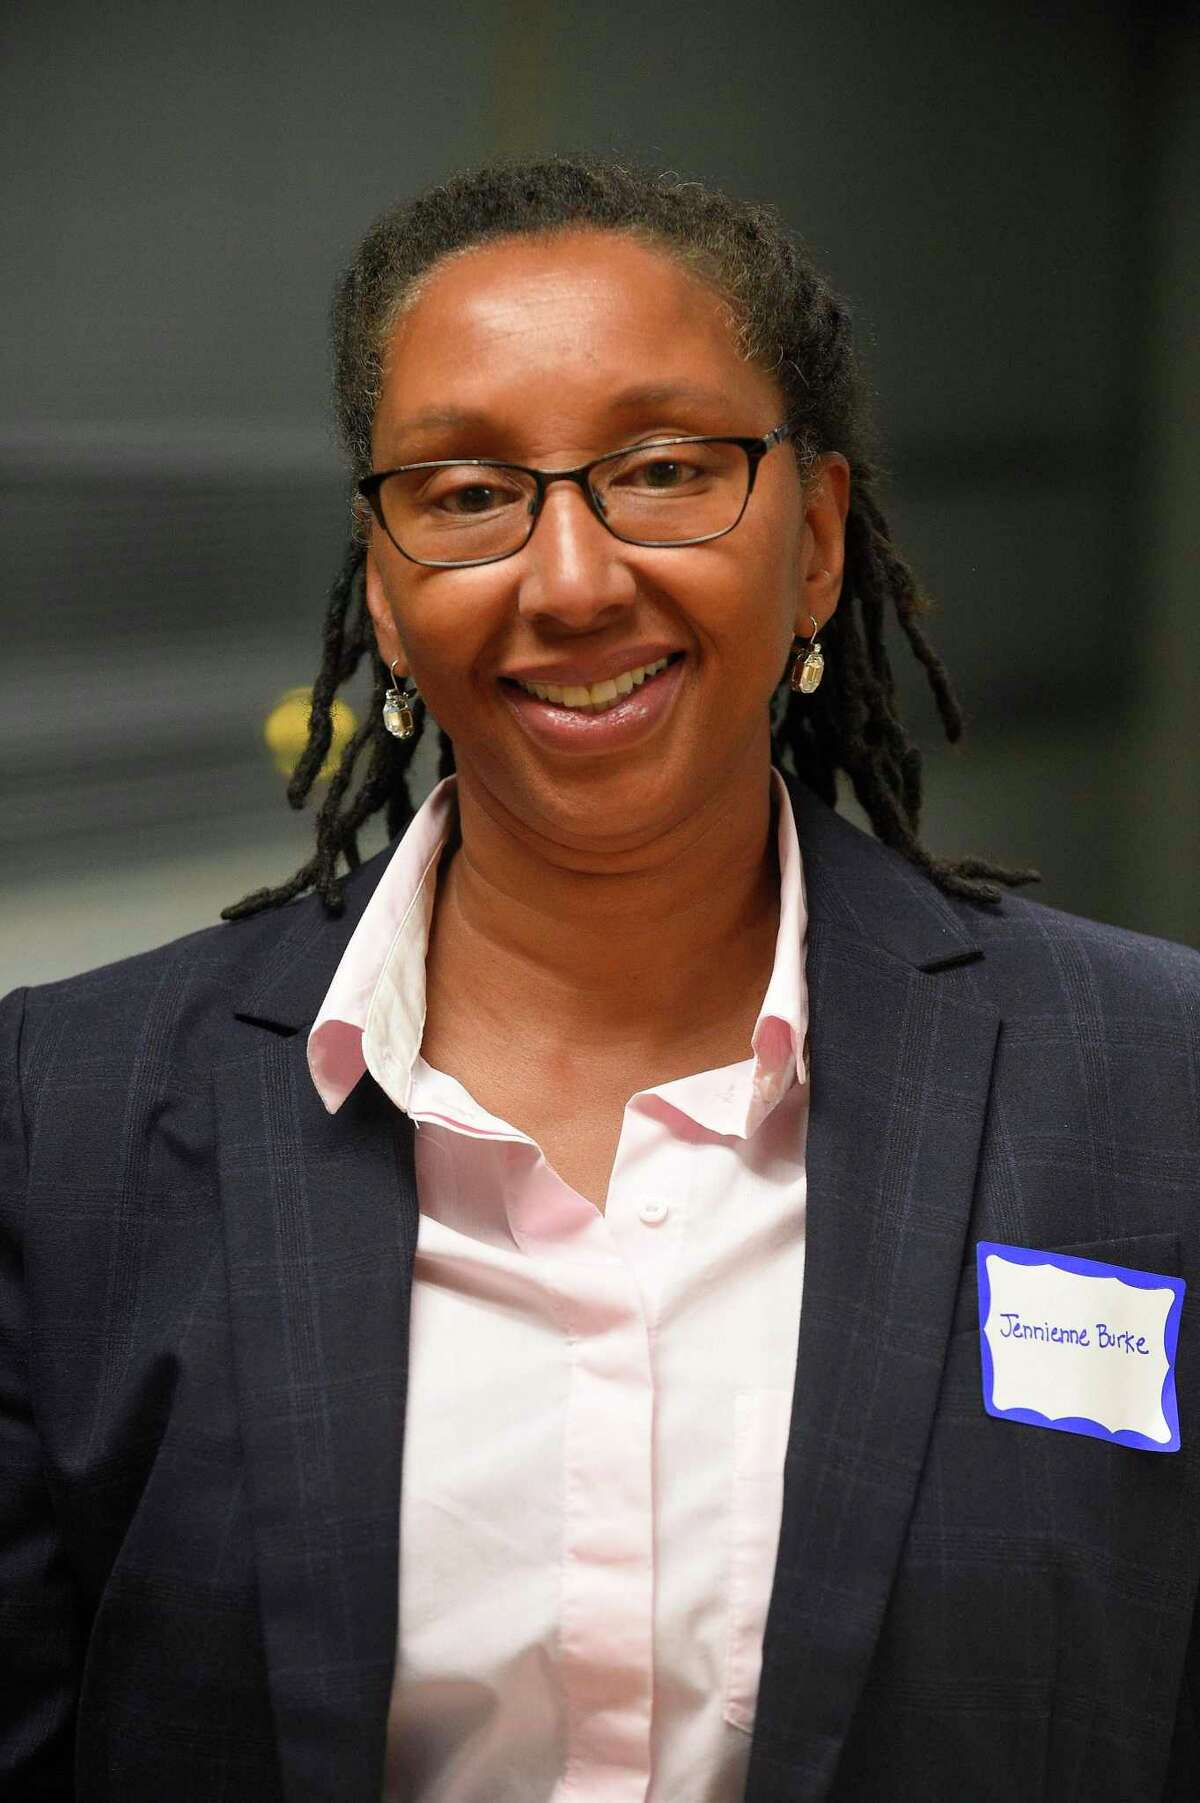 Jennienne Burke was voted president of the Stamford Board of Education on Tuesday, Dec. 1, 2020.